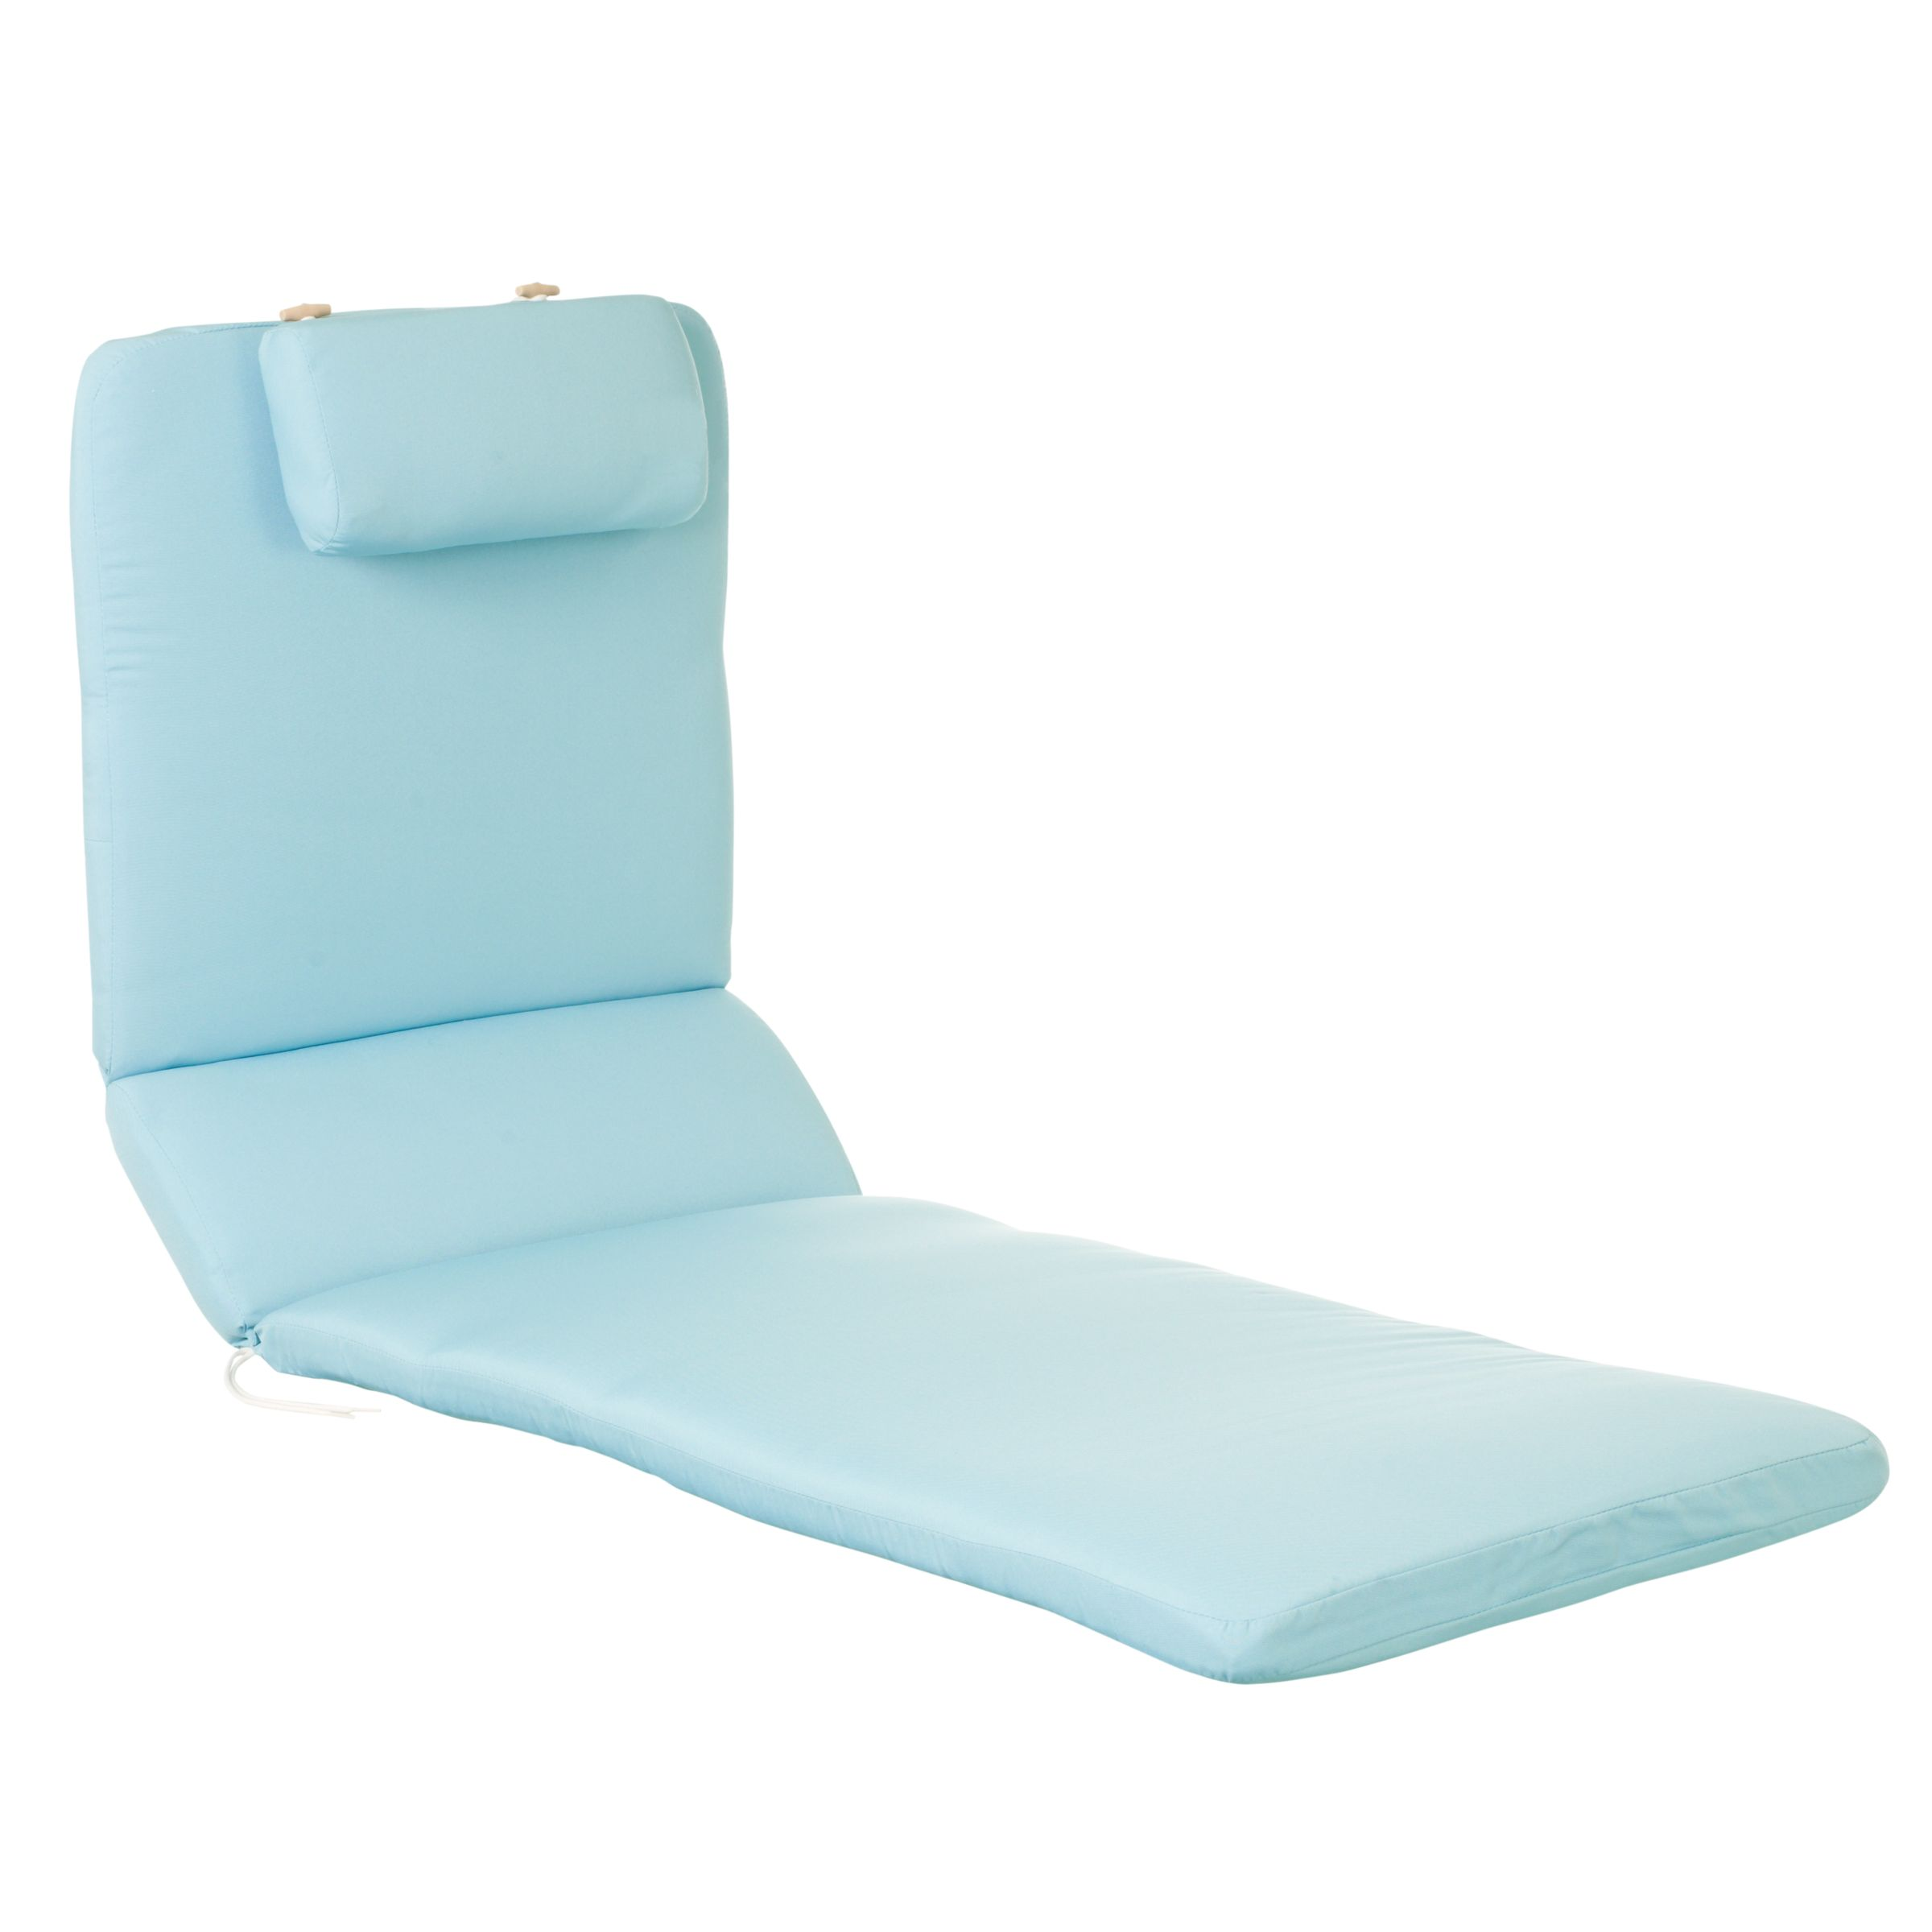 Royal Garden Alexo Lounger Cushion, Kingfisher